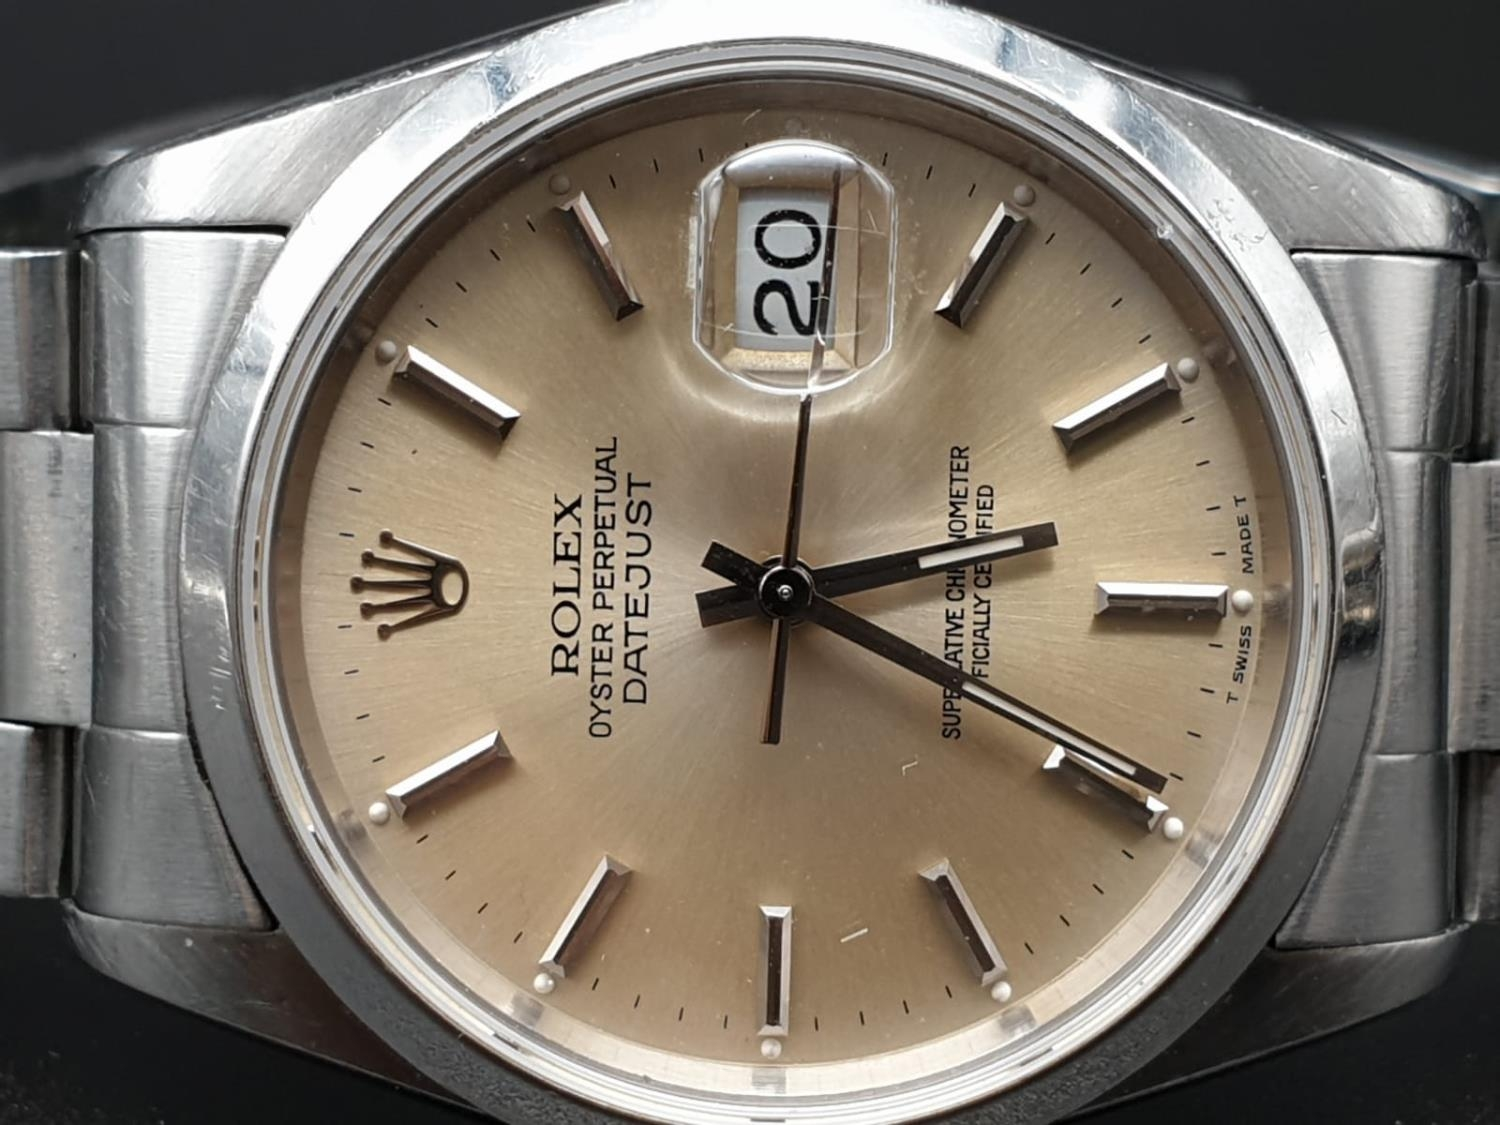 ROLEX OYSTER DATEJUST IN STAINLESS STEEL WITH ATTRACTIVE LIGHT OYSTER FACE, FWO 36MM - Image 5 of 10